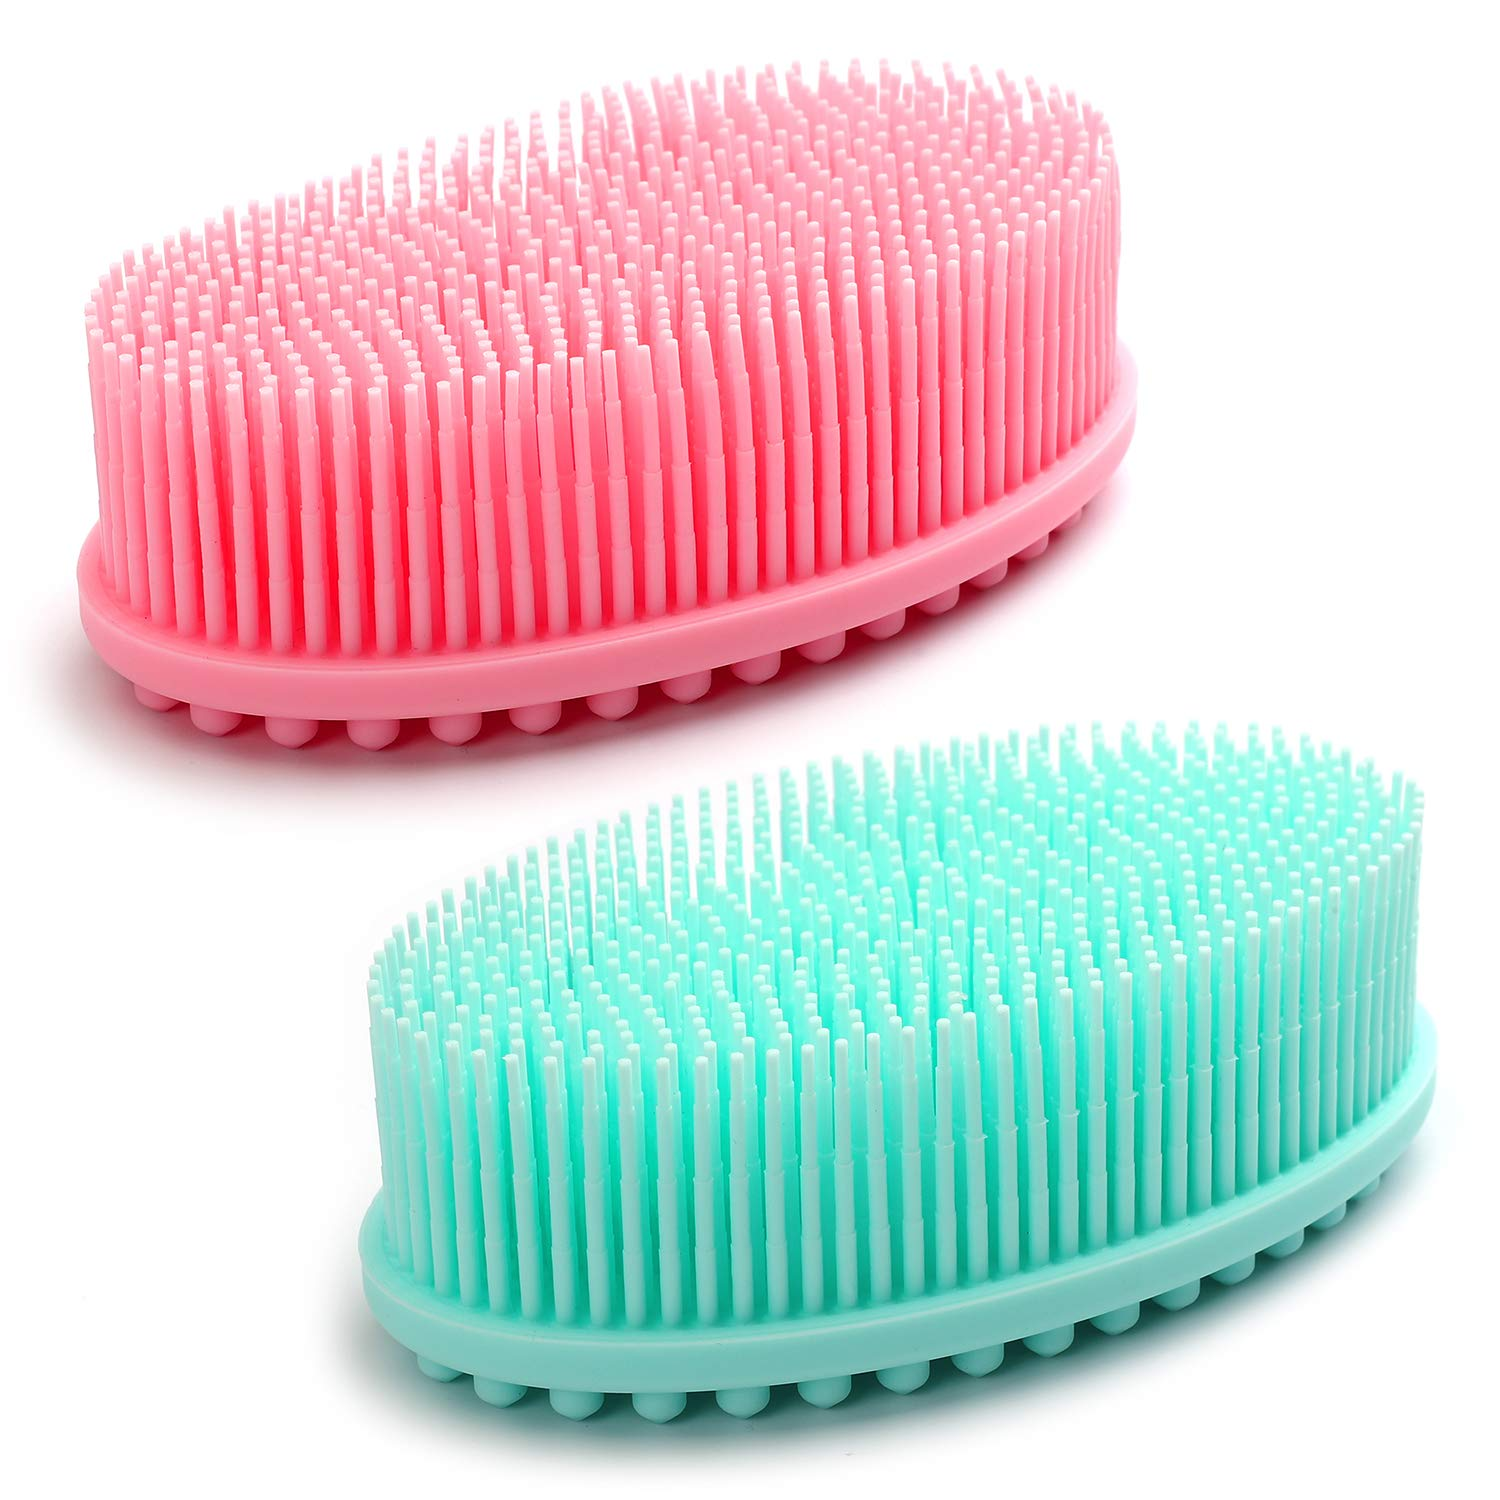 Silicone Detroit Mall Body Scrubber Bath Shower Cleaning Large discharge sale Back Gl Brush